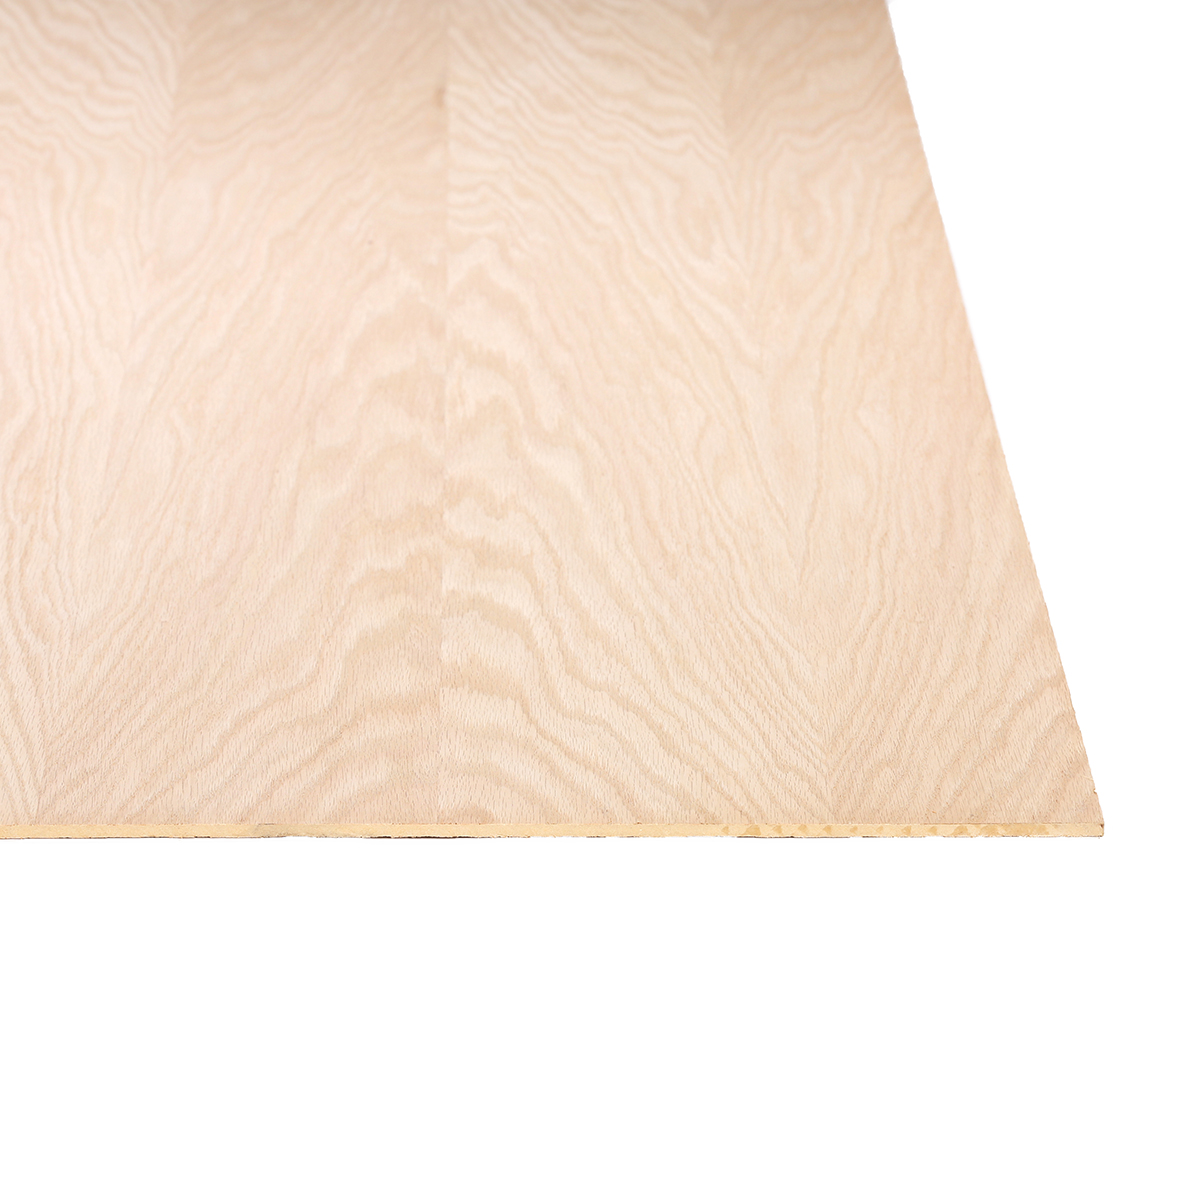 Red Oak Cabinet Grade Plywood (MDF core 48 1/2 x 96 1/2 sheet  #A46327 1200x1200